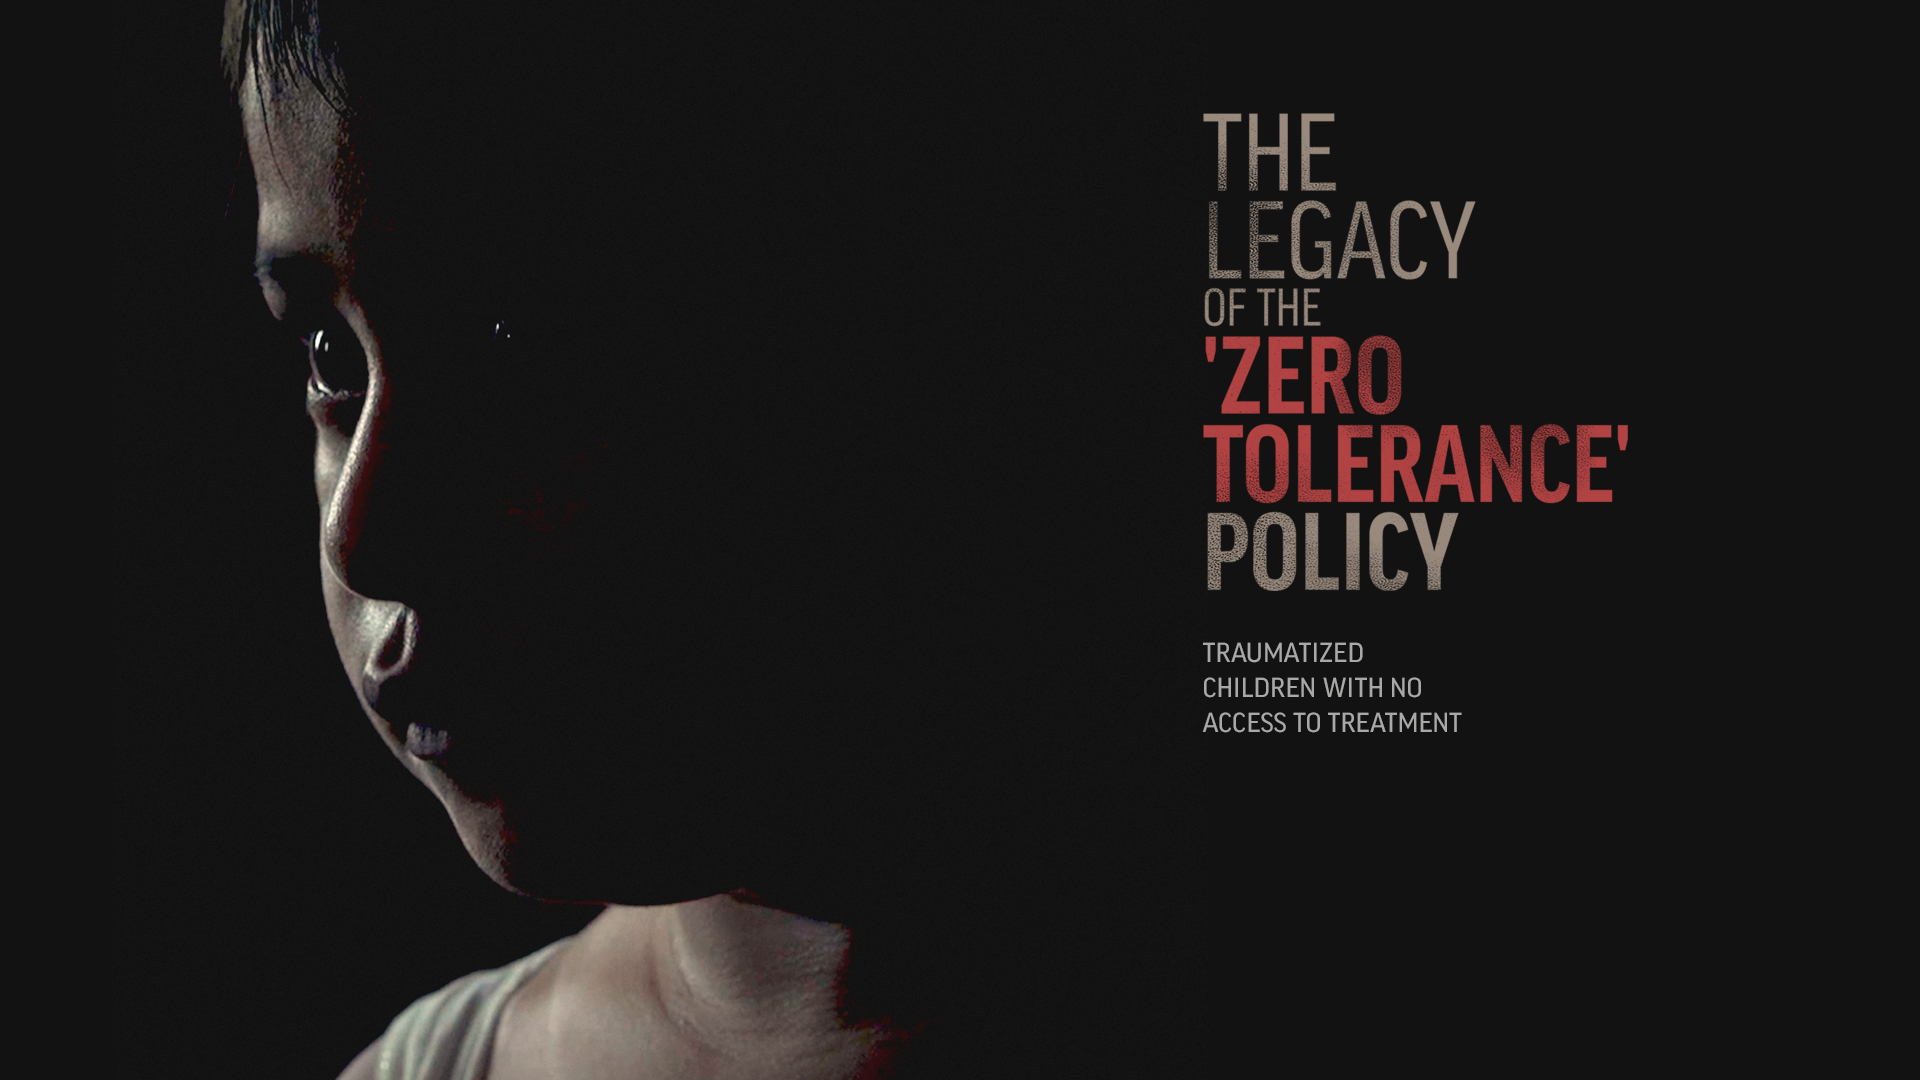 21_Wallpaper_The Legacy of the 'Zero Tolerance' Policy_ Traumatized Children With No Access to Treatment_Univision News Digital.jpg